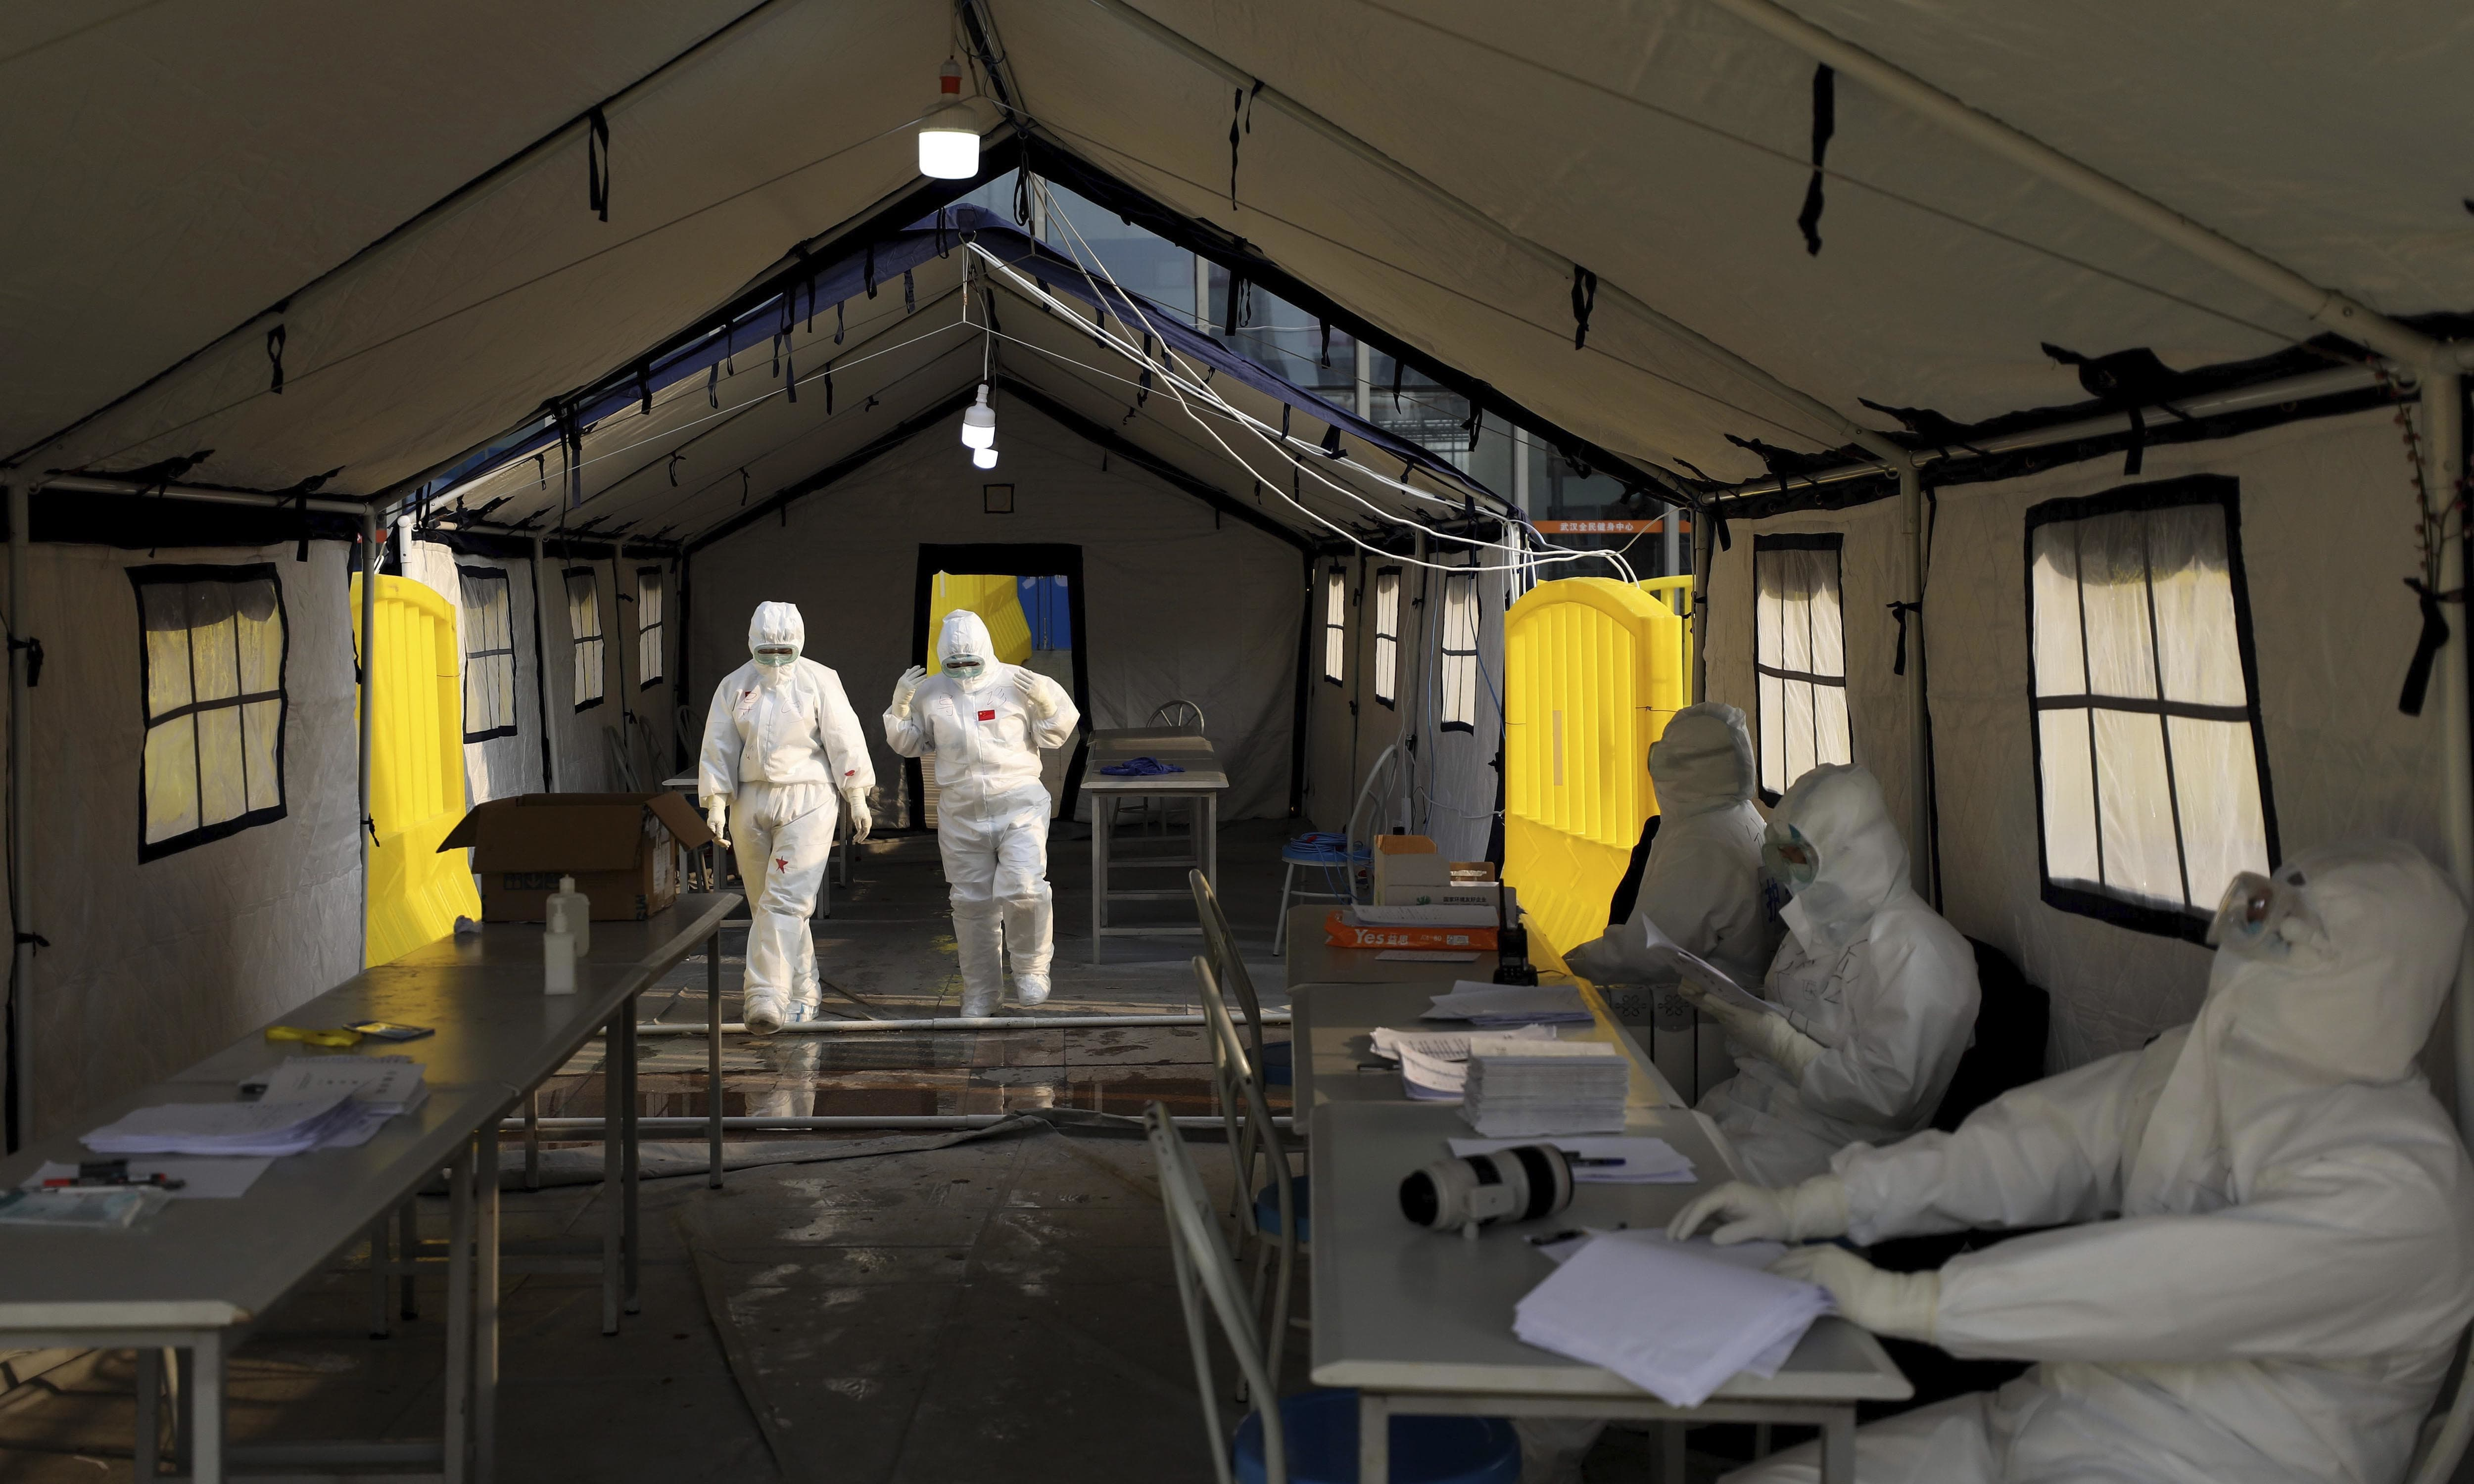 Medical workers in protective suits walk through a check-in tent at a temporary hospital at Tazihu Gymnasium in Wuhan on Feb 21. — AP